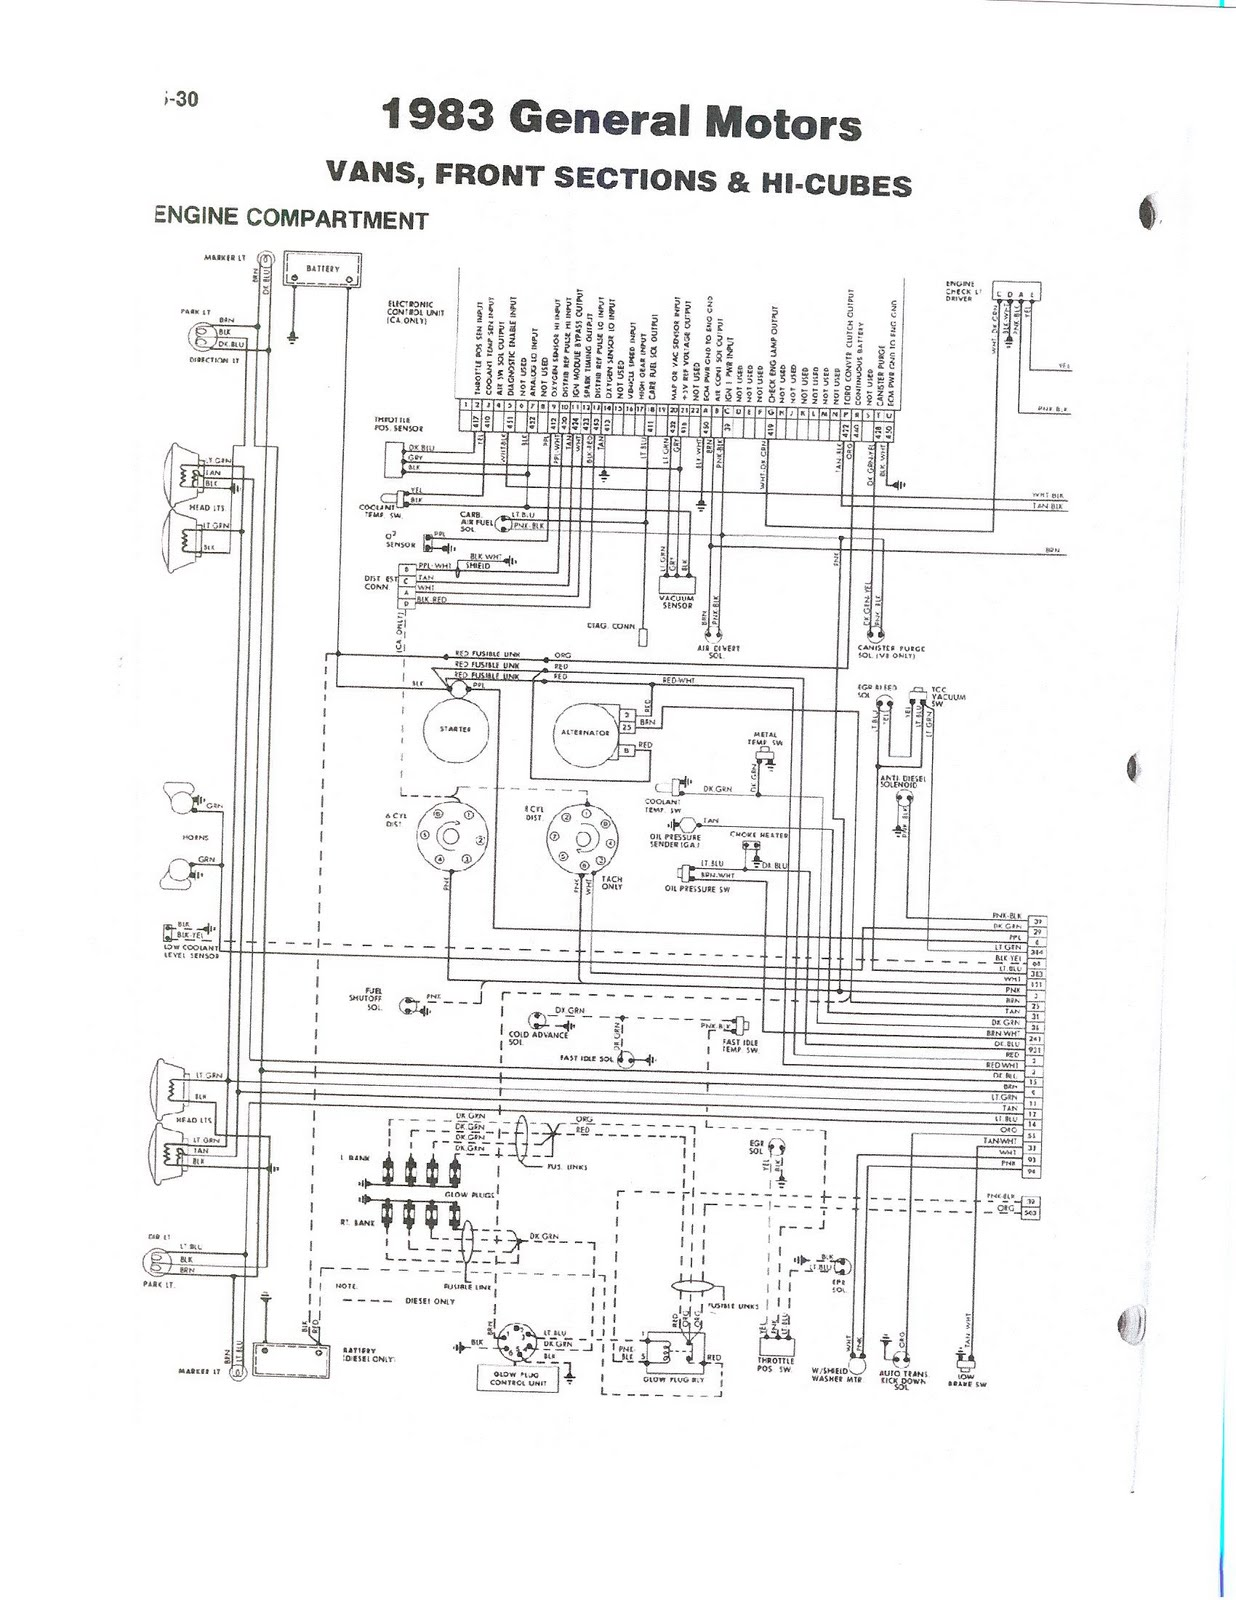 83+GM+Van+front+section+%26+Hi Cubes+engine+compartment 1983 fleetwood pace arrow owners manuals wireing diagram 83 gm 1988 Winnebago Motorhome Wiring Diagram at bakdesigns.co